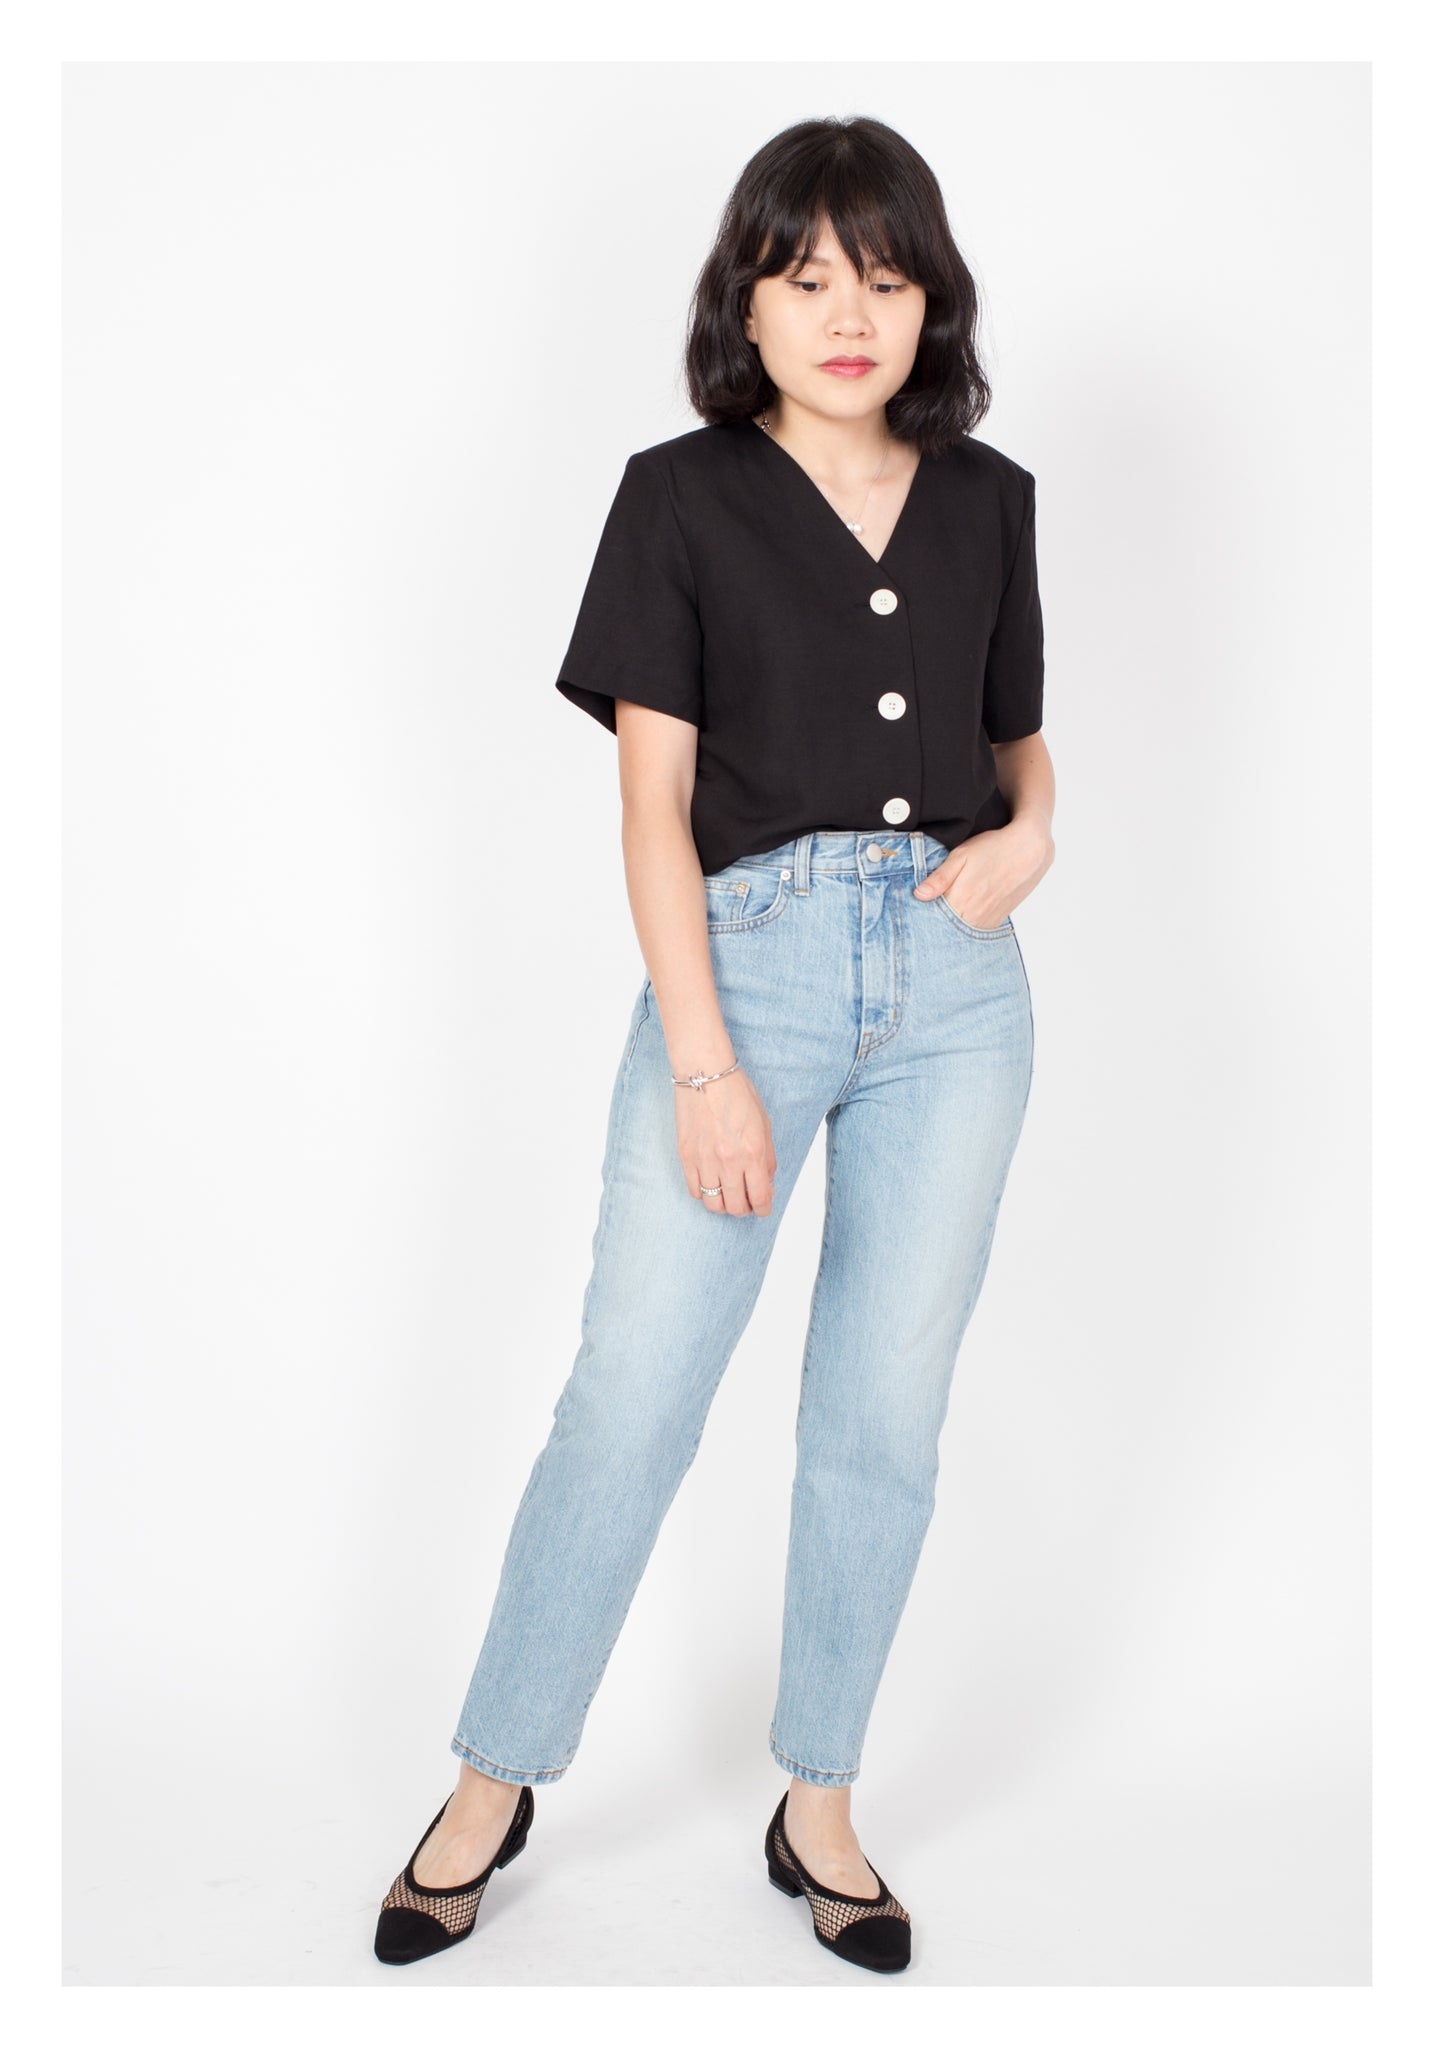 Short Sleeve Button Jacket Black